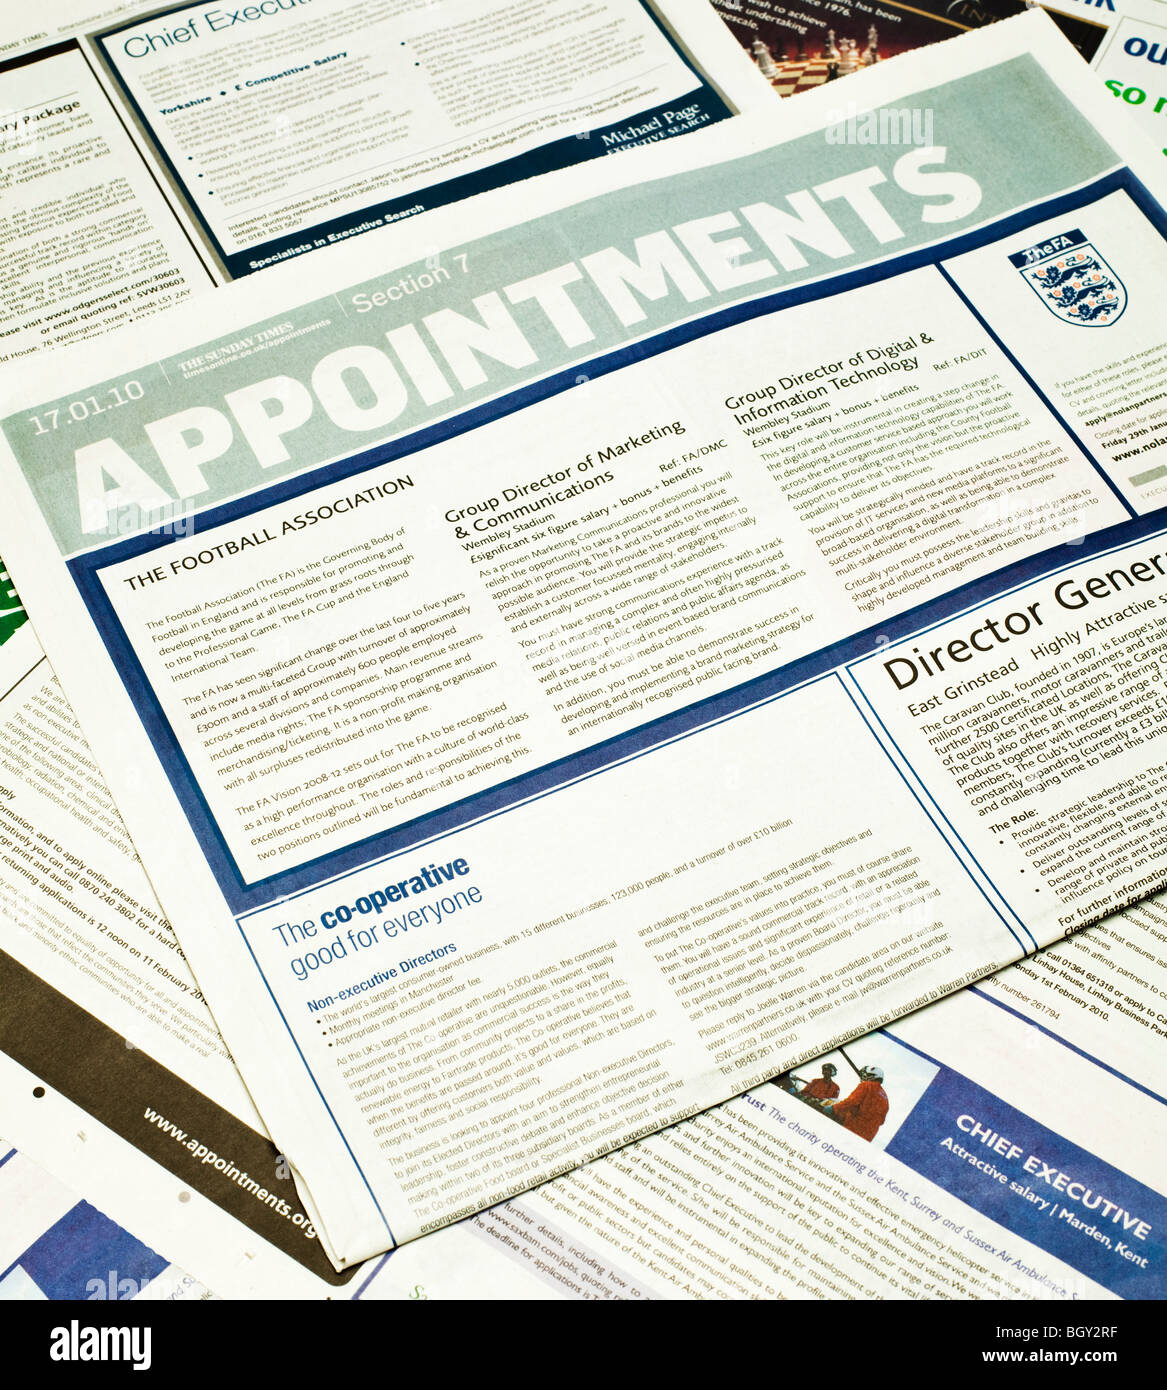 UK Newspaper Appointments section - Stock Image